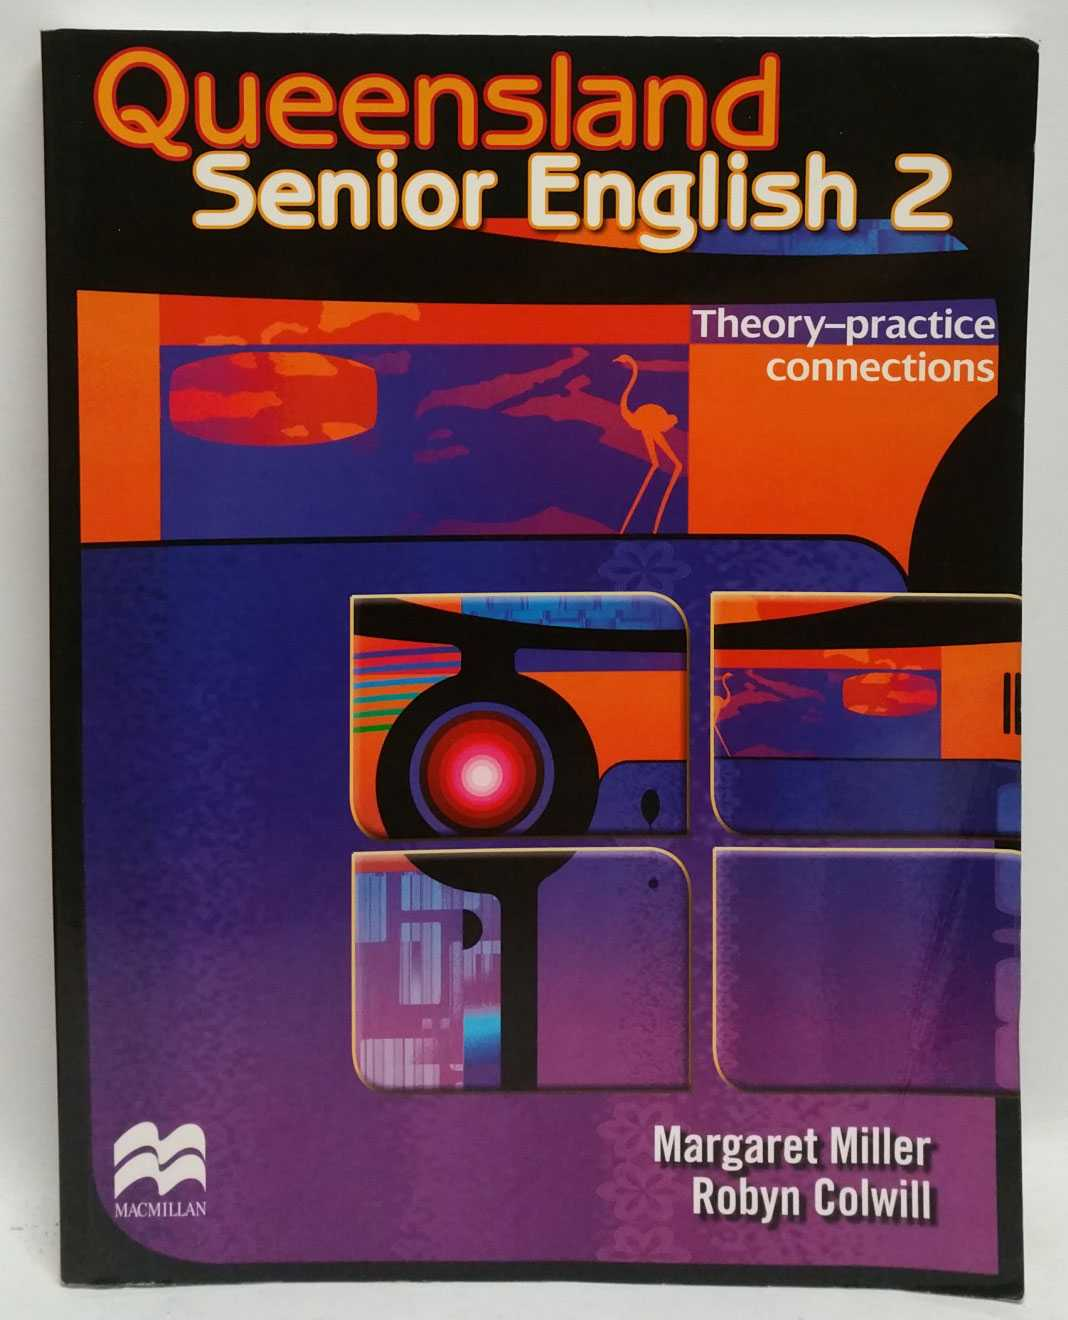 Queensland Senior English 2: Theory-Practice Connections, Margaret Miller; Robyn Colwil